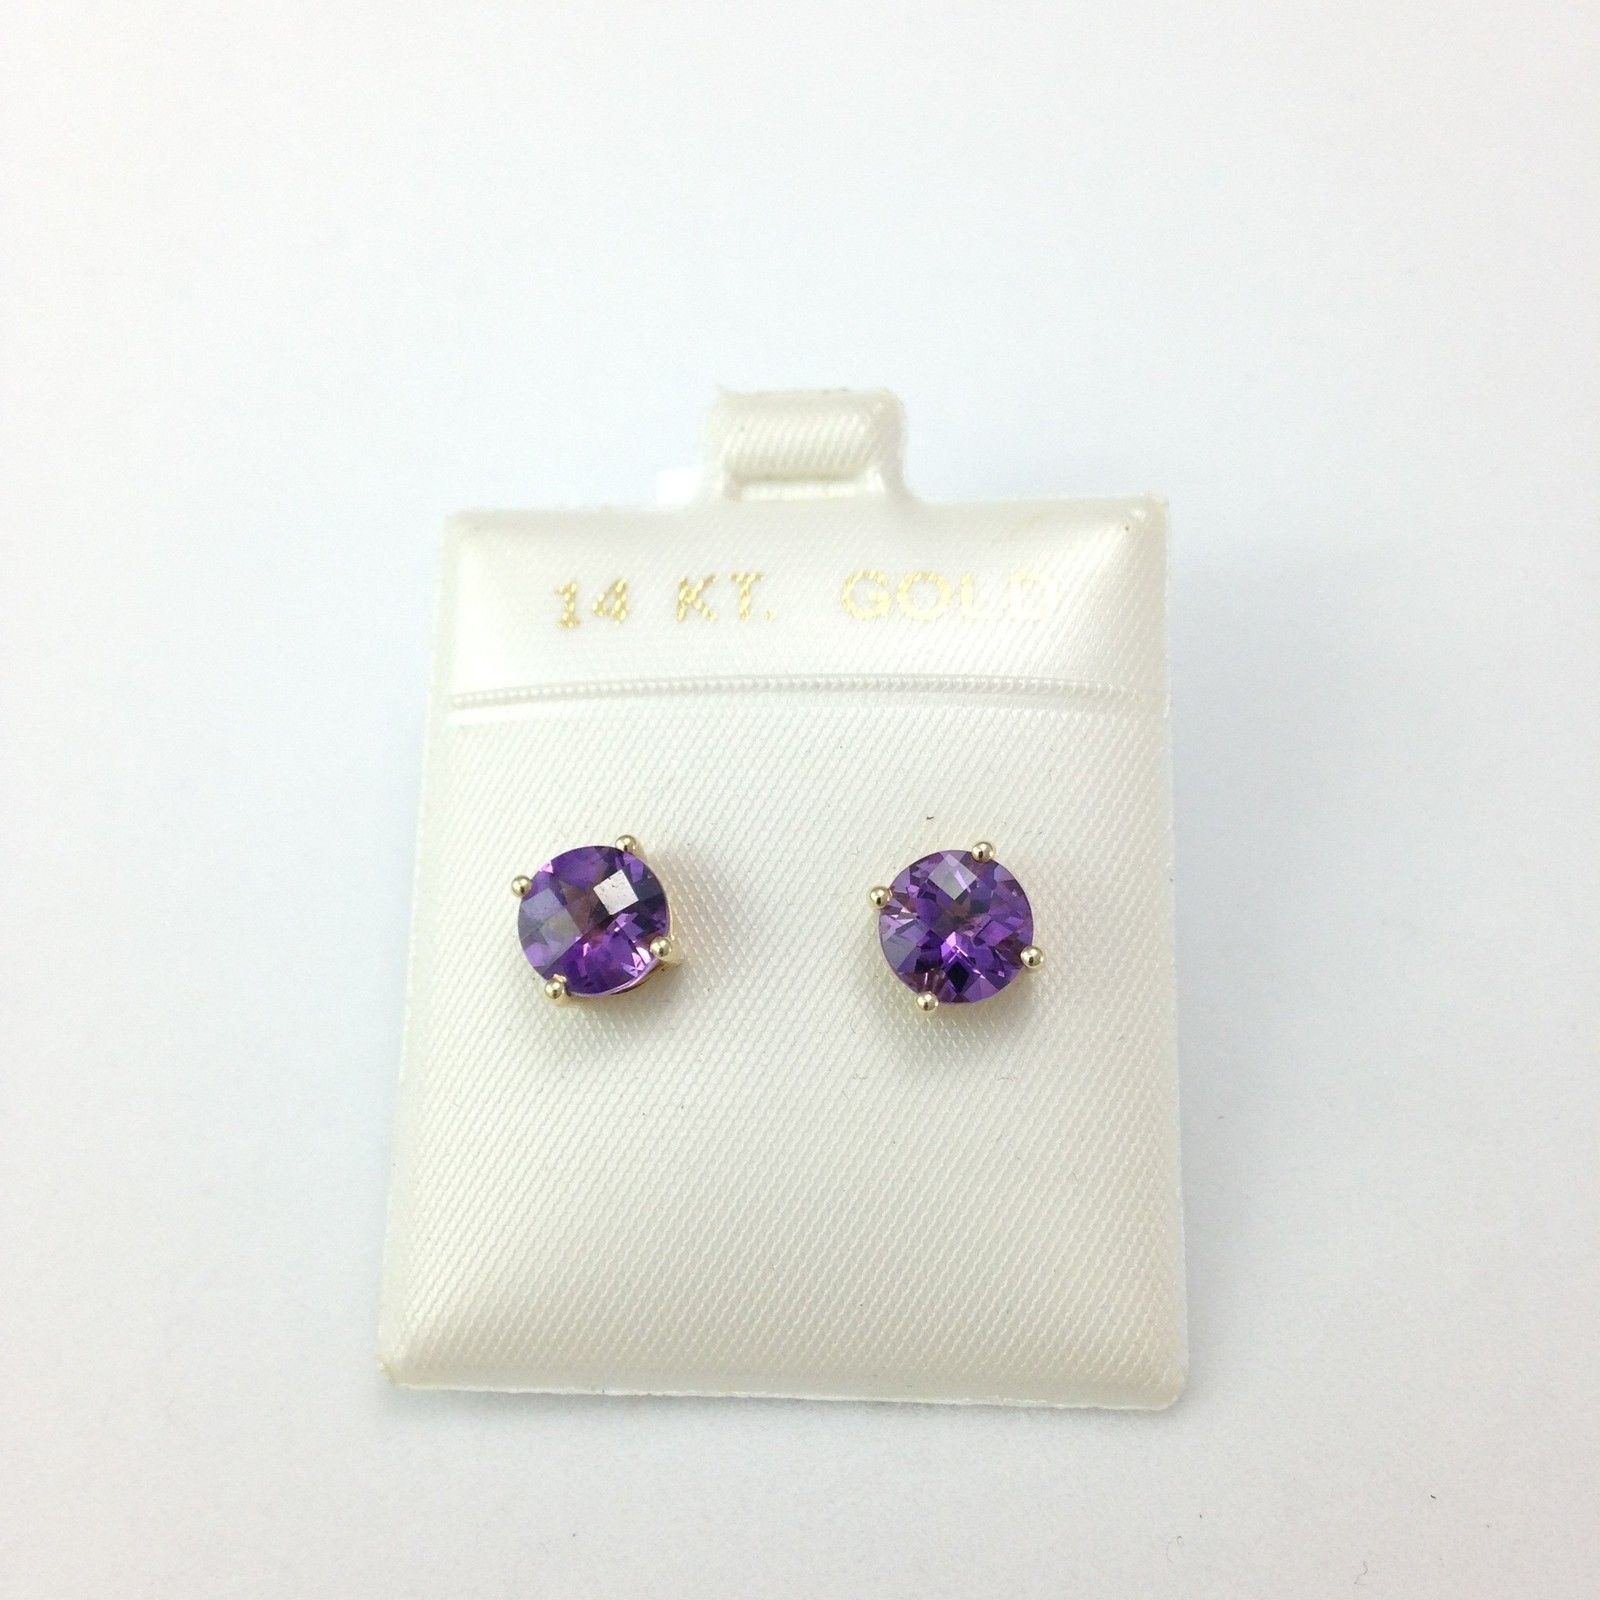 Genuine Amethyst Earrings 7mm 2.3 cttw 14K Yellow Gold NWT $511